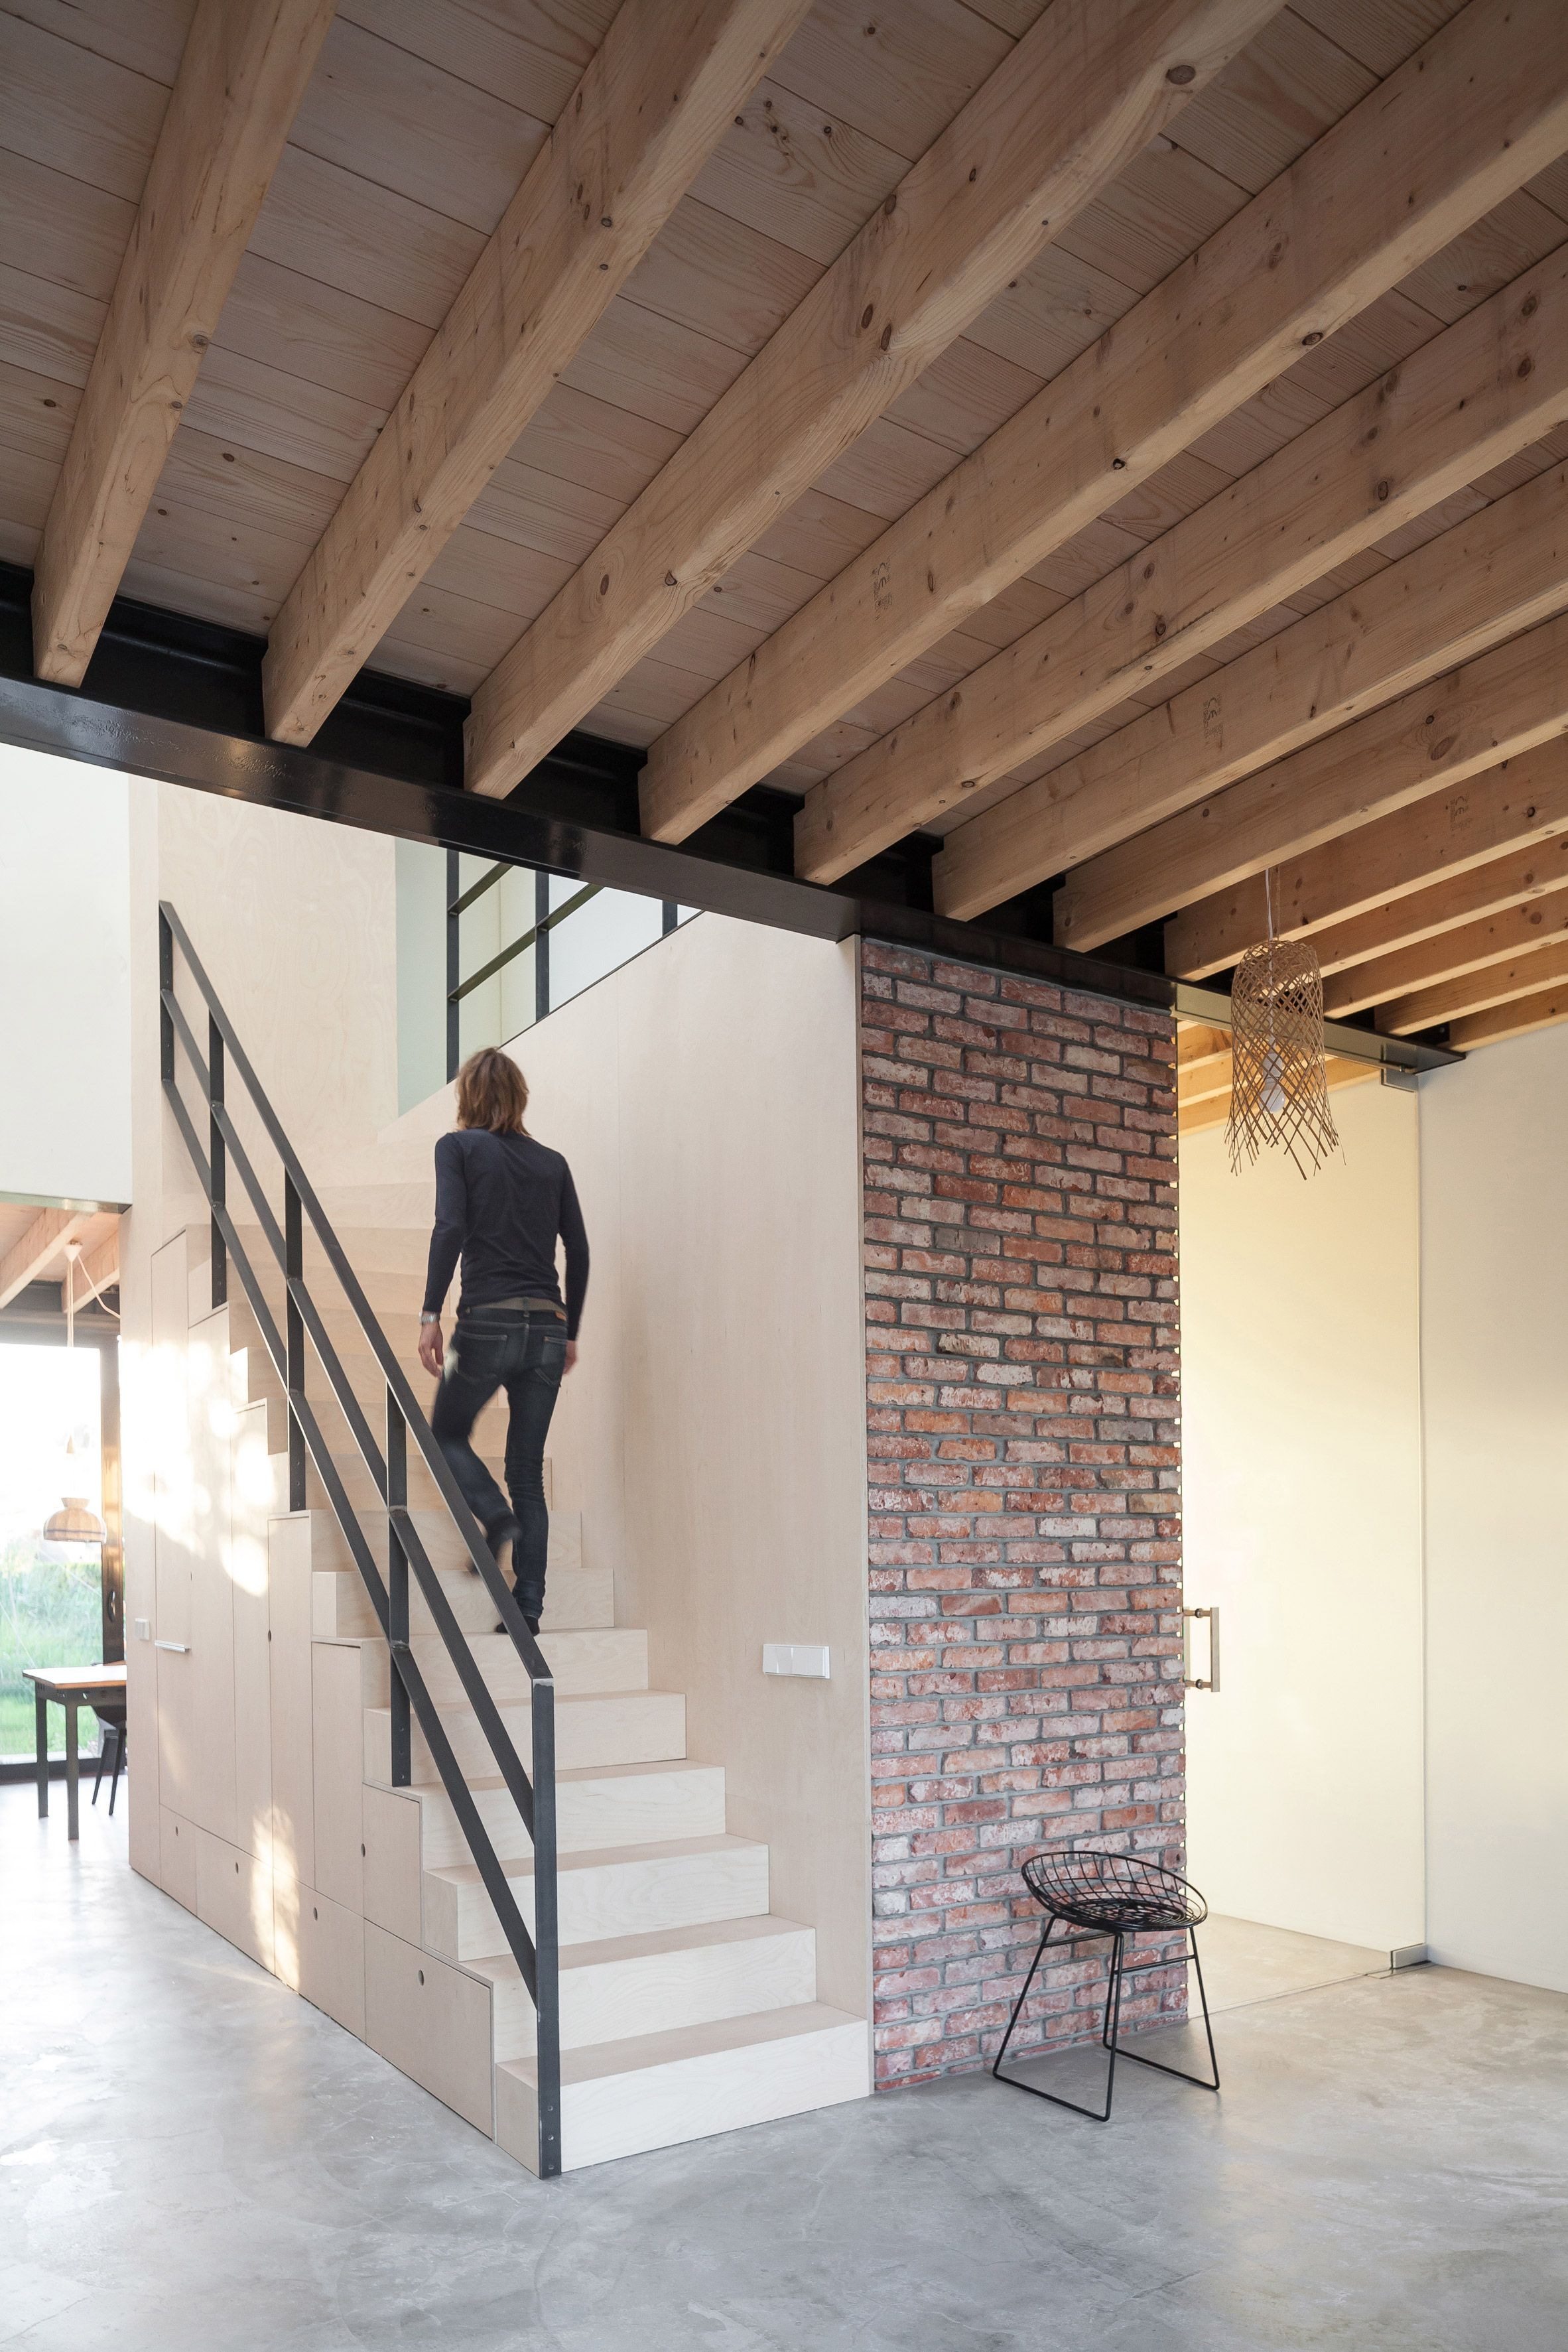 Awesome Dutch Architect Chris Collaris Has Completed A House In Amsterdam Clad  Entirely In Blackened Timber And